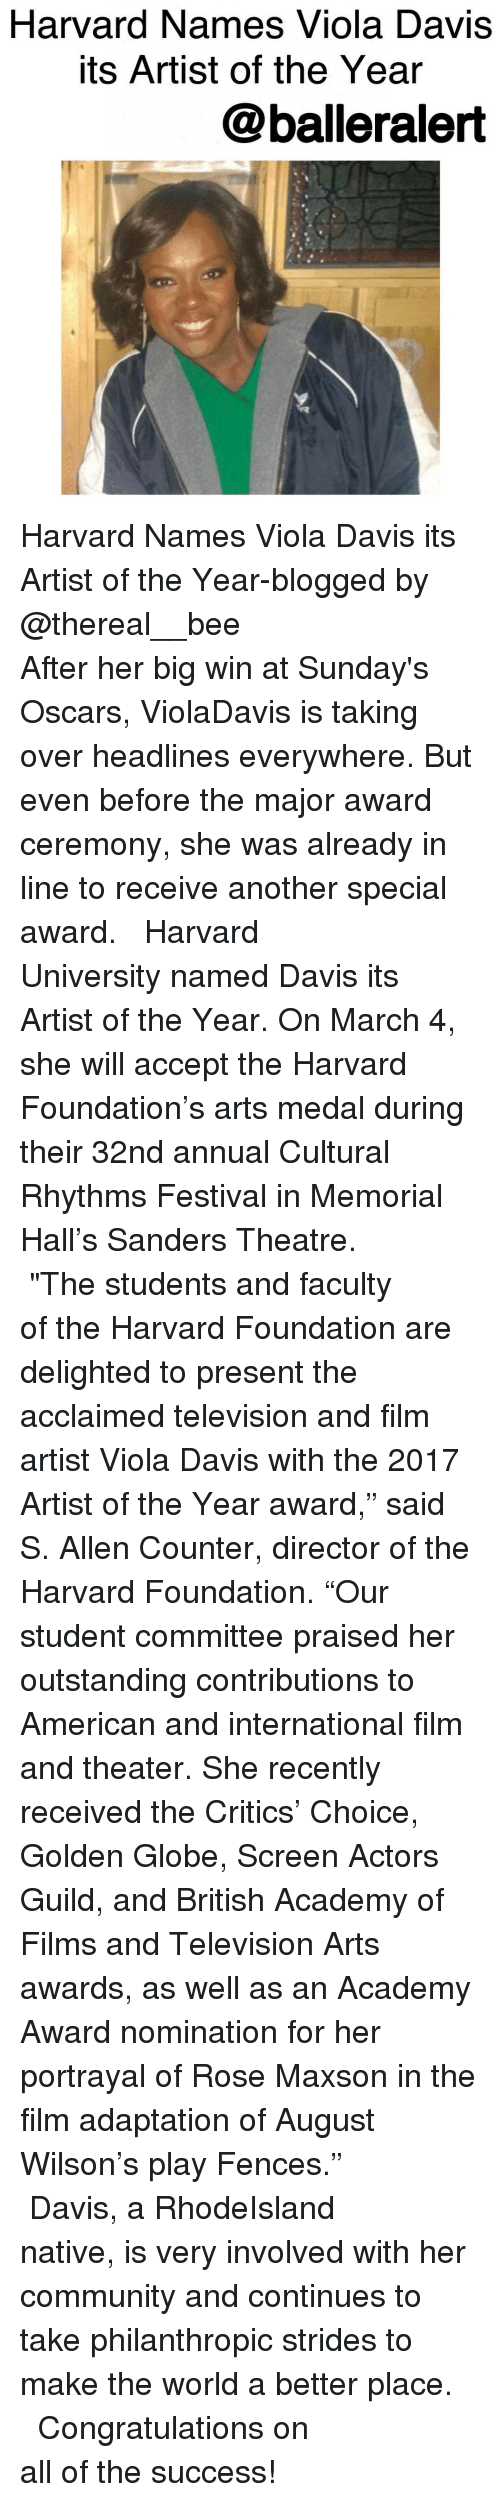 """guild: Harvard Names Viola Davis  Its Artist of the Year  balleralert Harvard Names Viola Davis its Artist of the Year-blogged by @thereal__bee ⠀⠀⠀⠀⠀⠀⠀⠀⠀ ⠀⠀⠀⠀⠀⠀⠀⠀⠀ After her big win at Sunday's Oscars, ViolaDavis is taking over headlines everywhere. But even before the major award ceremony, she was already in line to receive another special award. ⠀⠀⠀⠀⠀⠀⠀⠀⠀ ⠀⠀⠀⠀⠀⠀⠀⠀⠀ Harvard University named Davis its Artist of the Year. On March 4, she will accept the Harvard Foundation's arts medal during their 32nd annual Cultural Rhythms Festival in Memorial Hall's Sanders Theatre. ⠀⠀⠀⠀⠀⠀⠀⠀⠀ ⠀⠀⠀⠀⠀⠀⠀⠀⠀ """"The students and faculty of the Harvard Foundation are delighted to present the acclaimed television and film artist Viola Davis with the 2017 Artist of the Year award,"""" said S. Allen Counter, director of the Harvard Foundation. """"Our student committee praised her outstanding contributions to American and international film and theater. She recently received the Critics' Choice, Golden Globe, Screen Actors Guild, and British Academy of Films and Television Arts awards, as well as an Academy Award nomination for her portrayal of Rose Maxson in the film adaptation of August Wilson's play Fences."""" ⠀⠀⠀⠀⠀⠀⠀⠀⠀ ⠀⠀⠀⠀⠀⠀⠀⠀⠀ Davis, a RhodeIsland native, is very involved with her community and continues to take philanthropic strides to make the world a better place. ⠀⠀⠀⠀⠀⠀⠀⠀⠀ ⠀⠀⠀⠀⠀⠀⠀⠀⠀ Congratulations on all of the success!"""